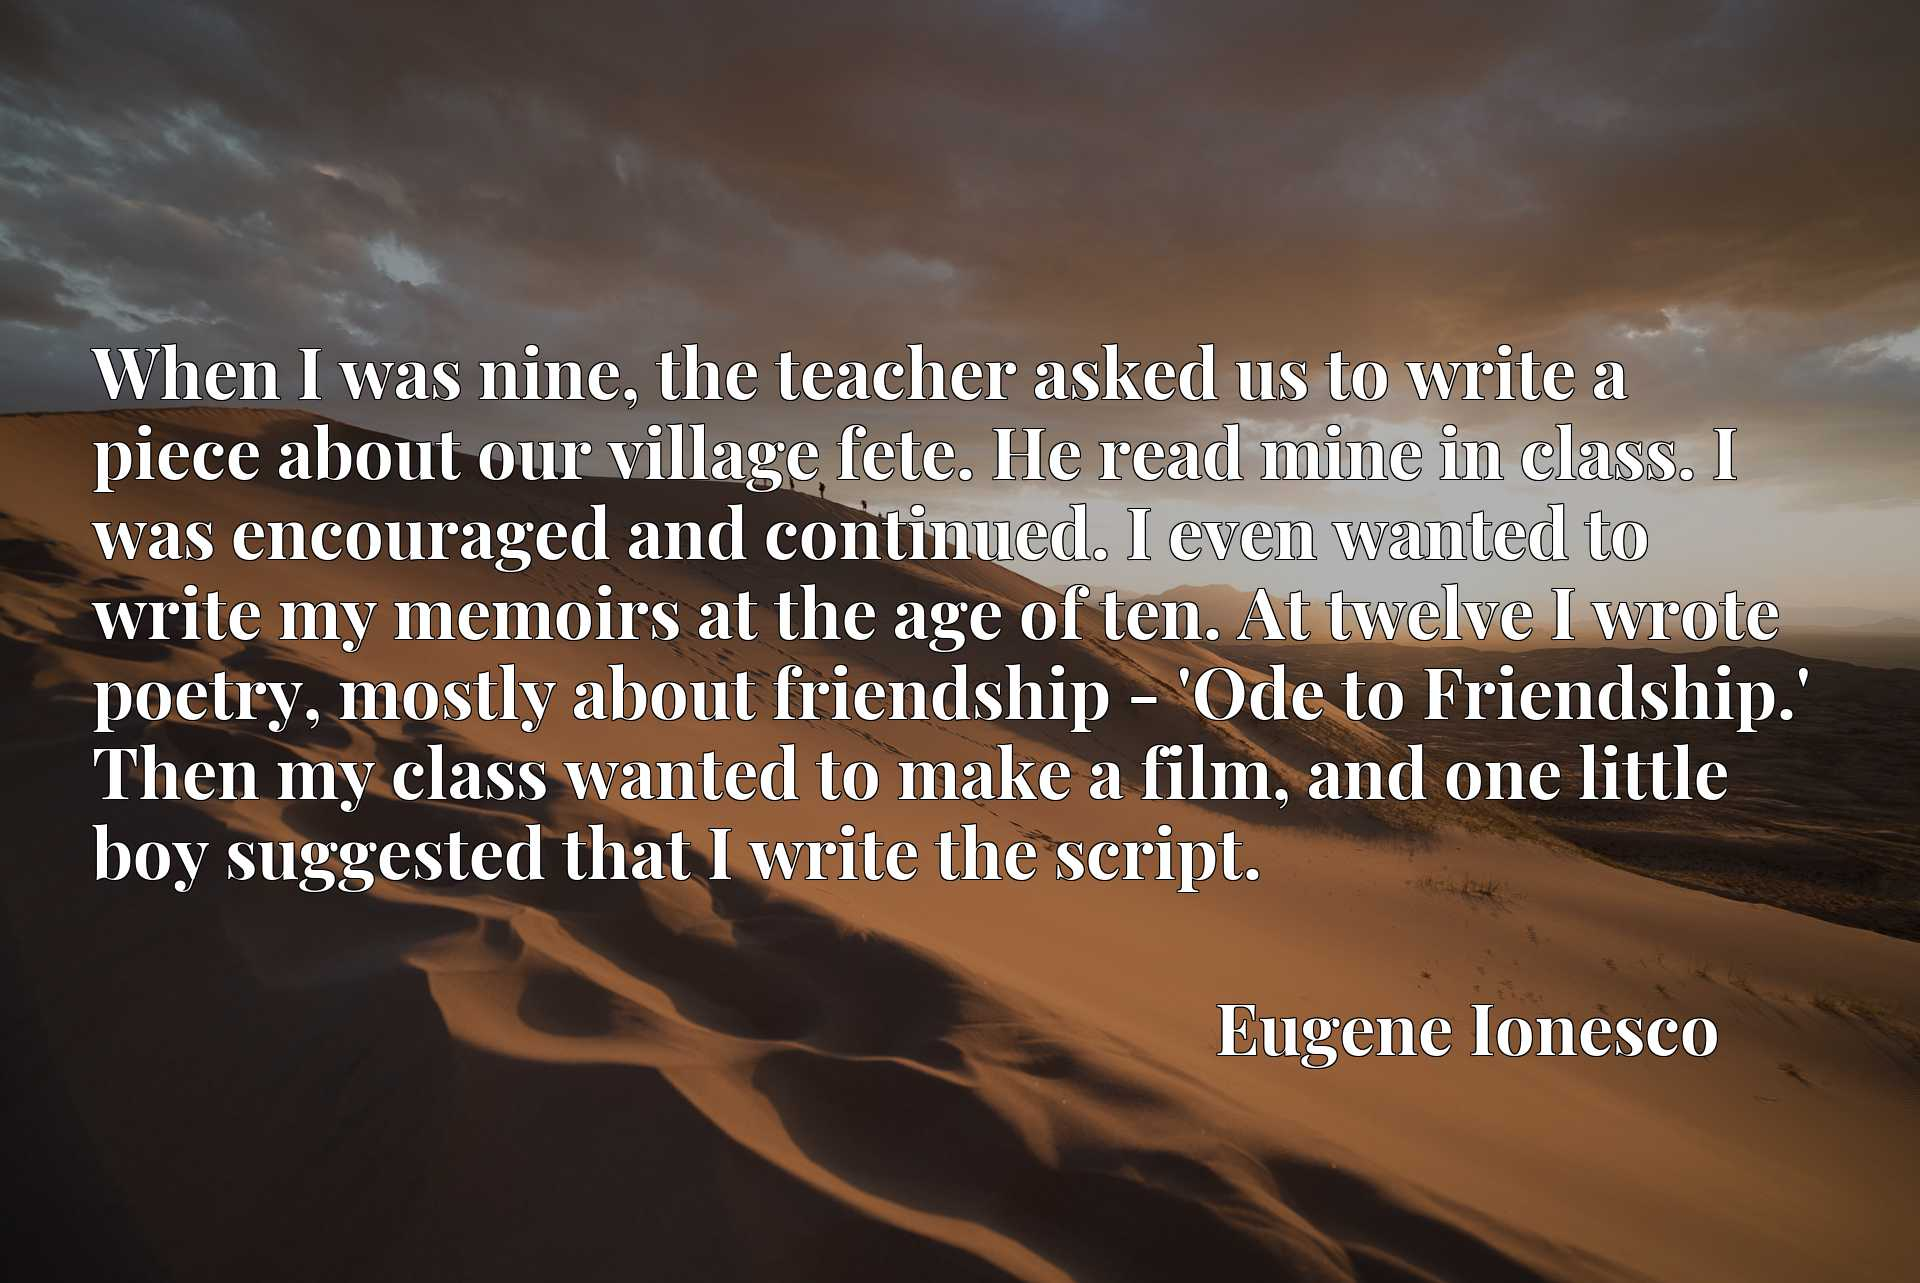 When I was nine, the teacher asked us to write a piece about our village fete. He read mine in class. I was encouraged and continued. I even wanted to write my memoirs at the age of ten. At twelve I wrote poetry, mostly about friendship - 'Ode to Friendship.' Then my class wanted to make a film, and one little boy suggested that I write the script.